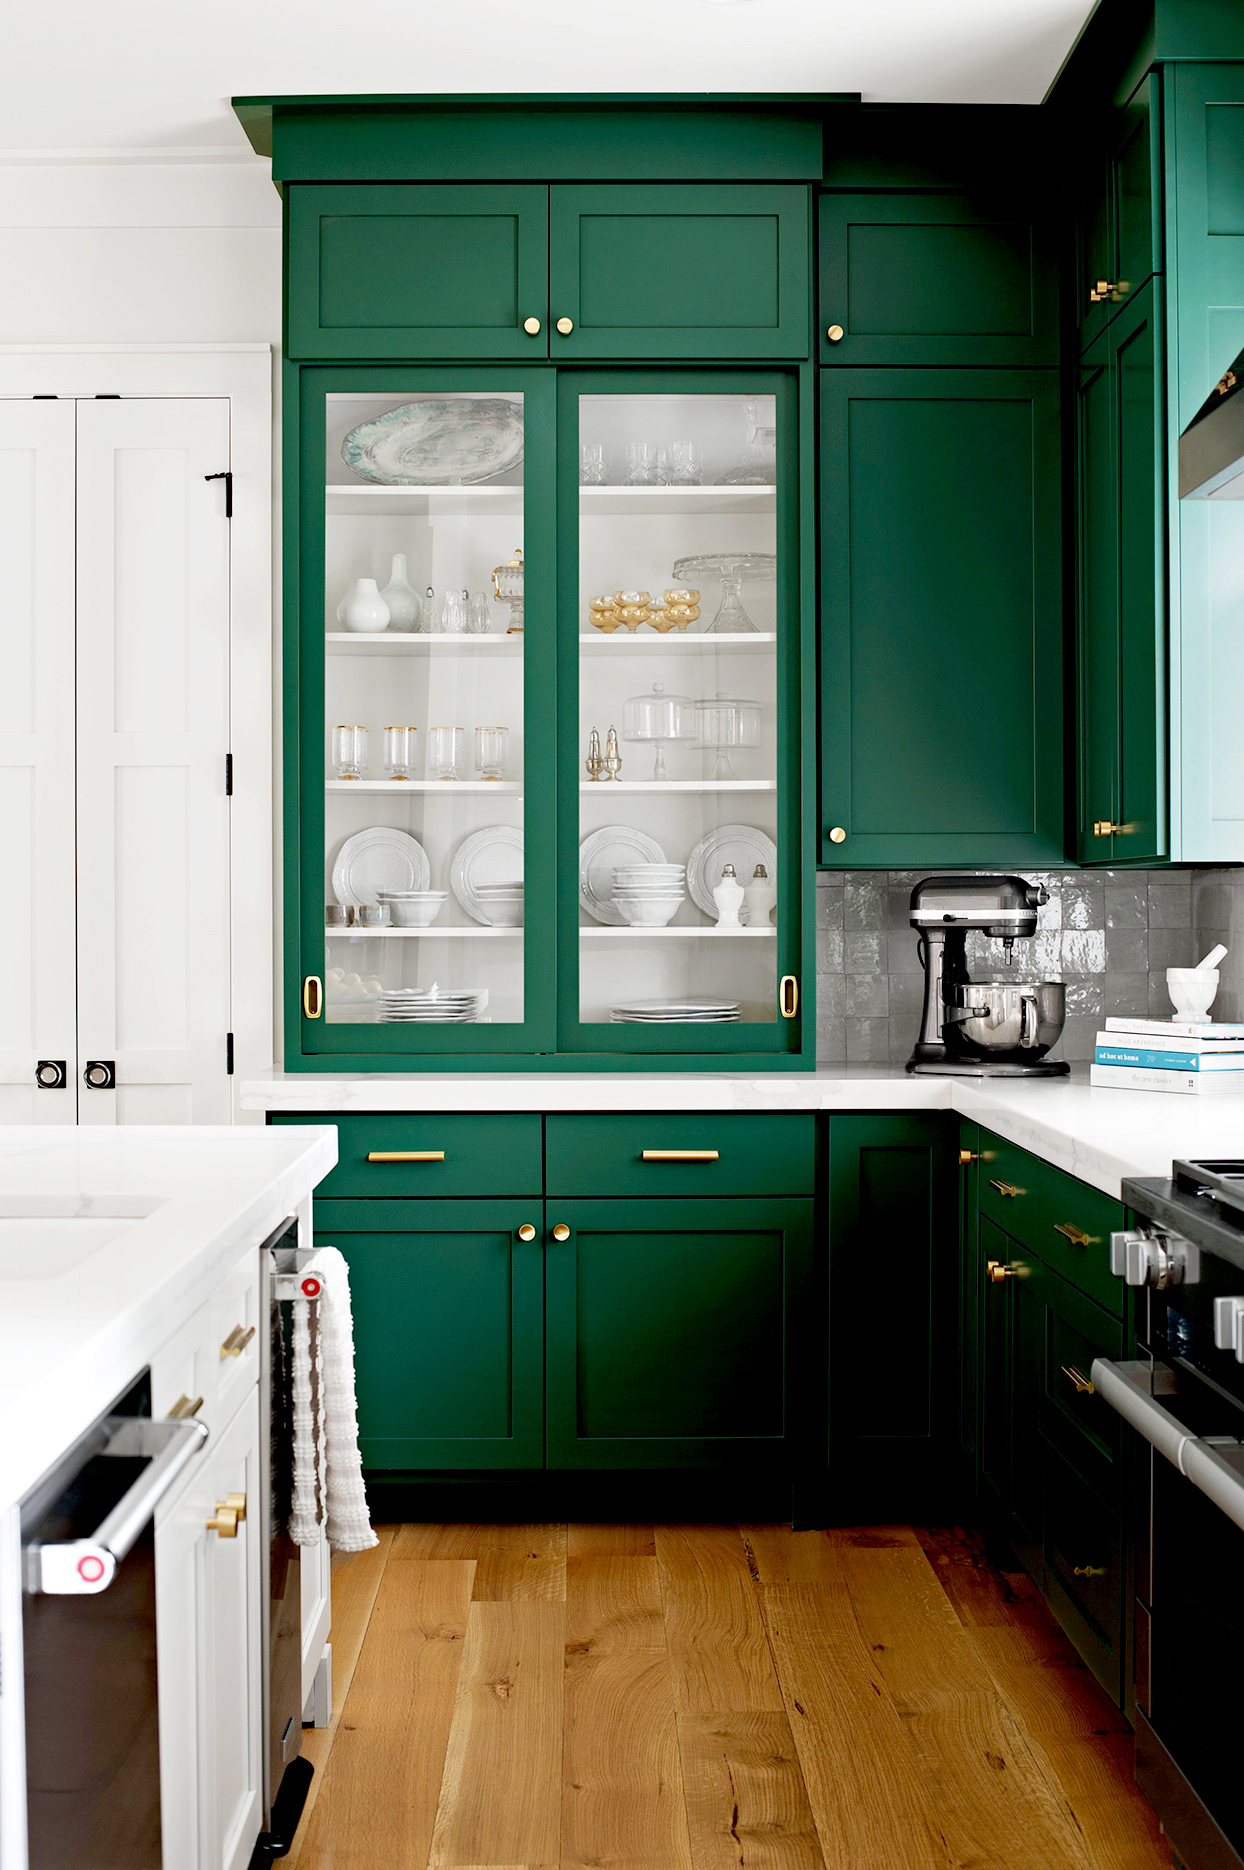 Kitchen cabinets in  Tarrytown Green by Benjamin Moore.